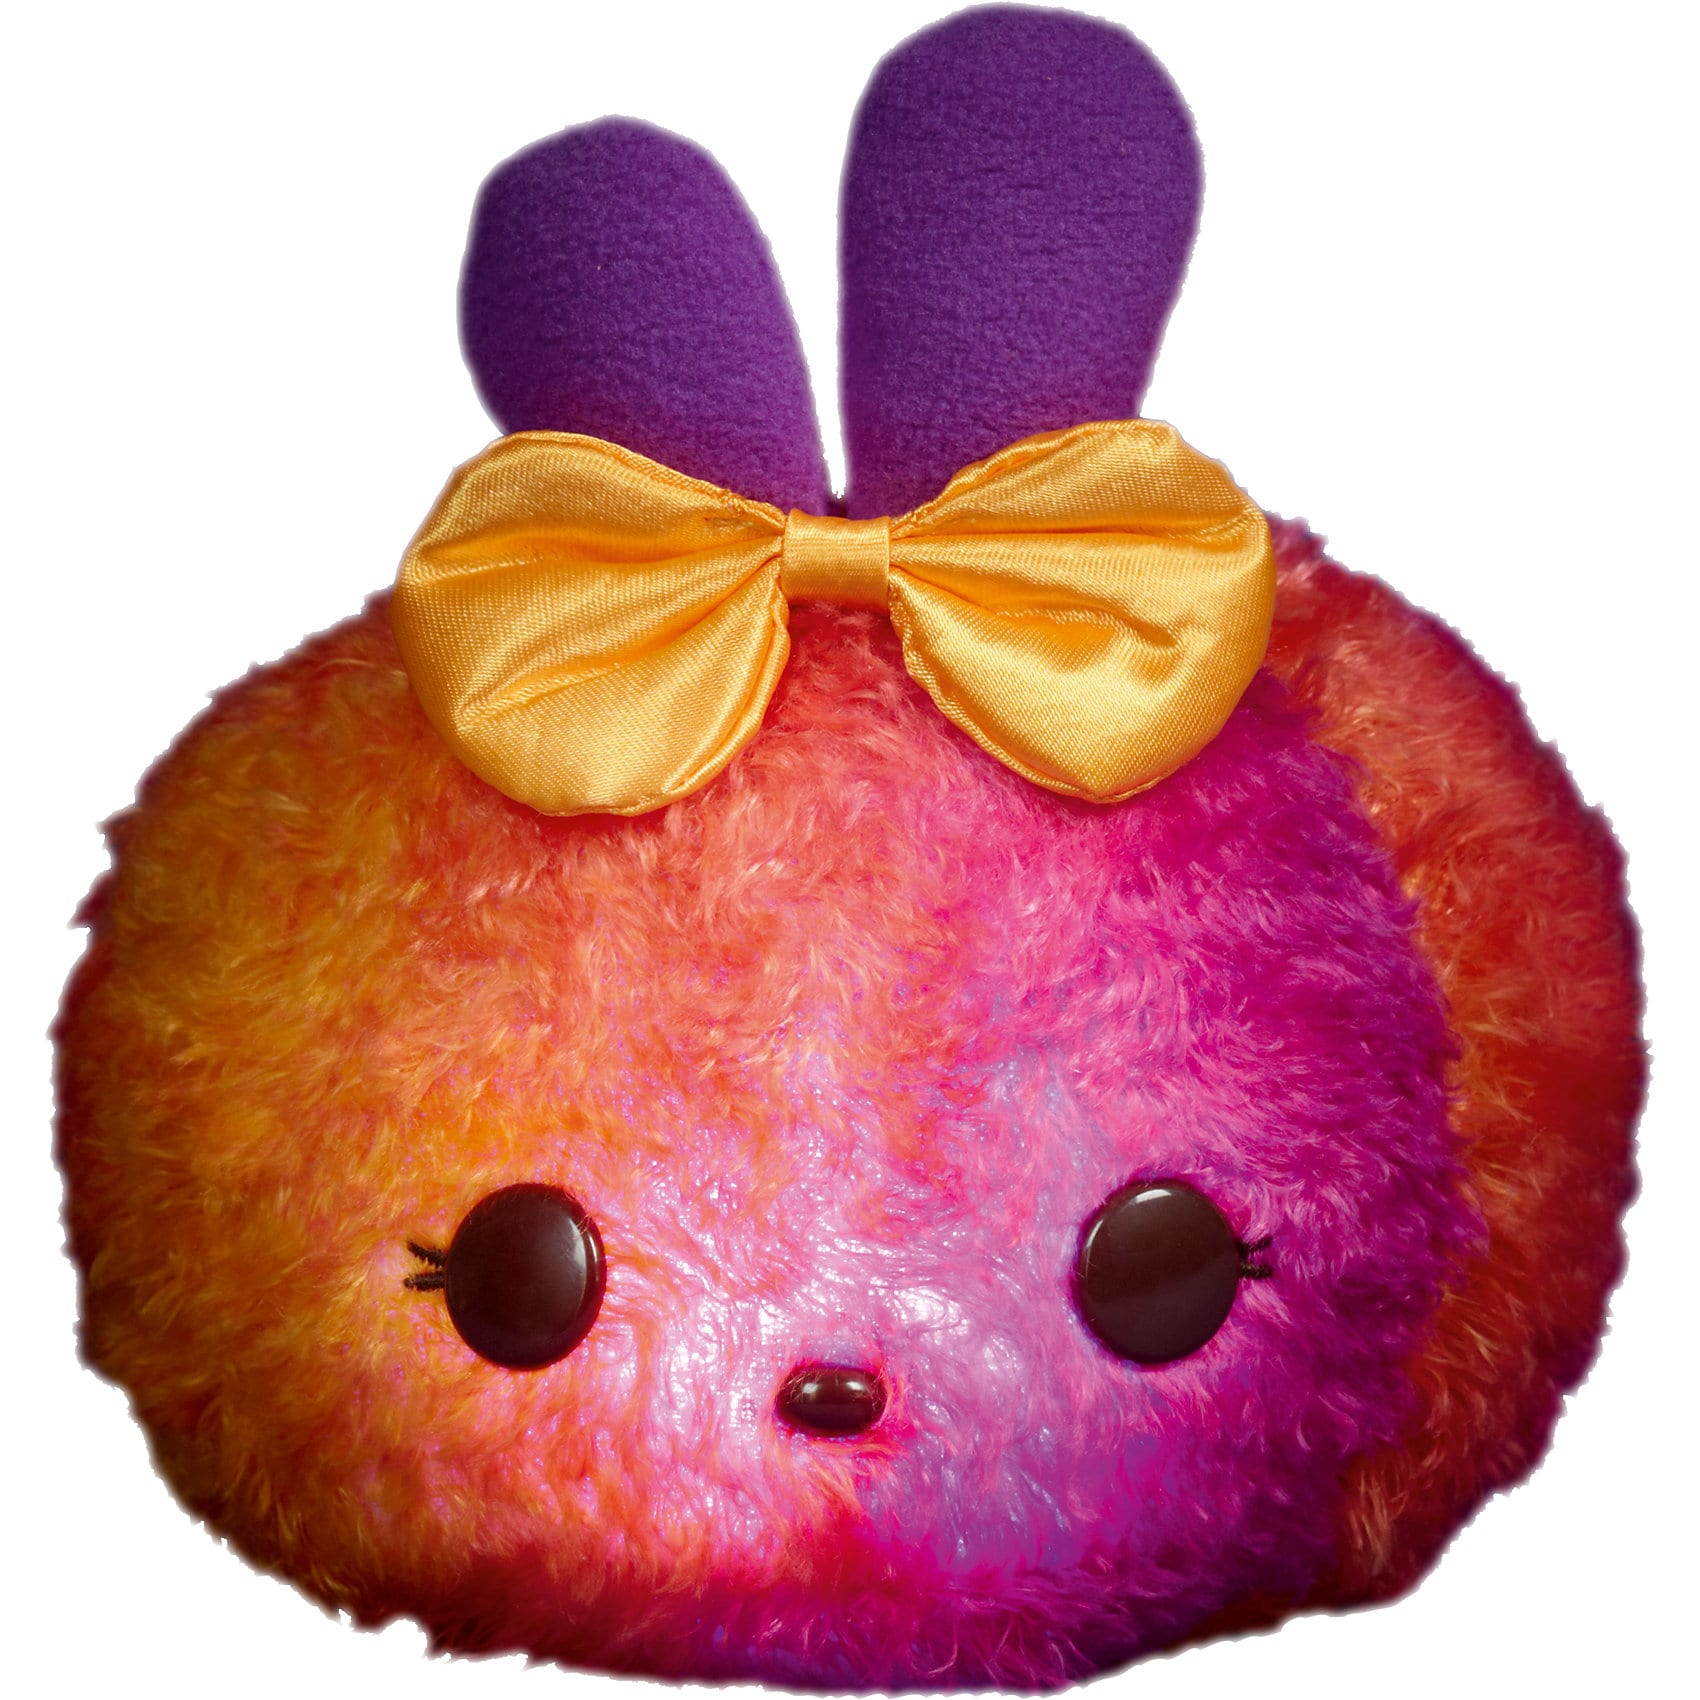 MGA Num Noms Lights Surprise in a JarTriple Berry Icy